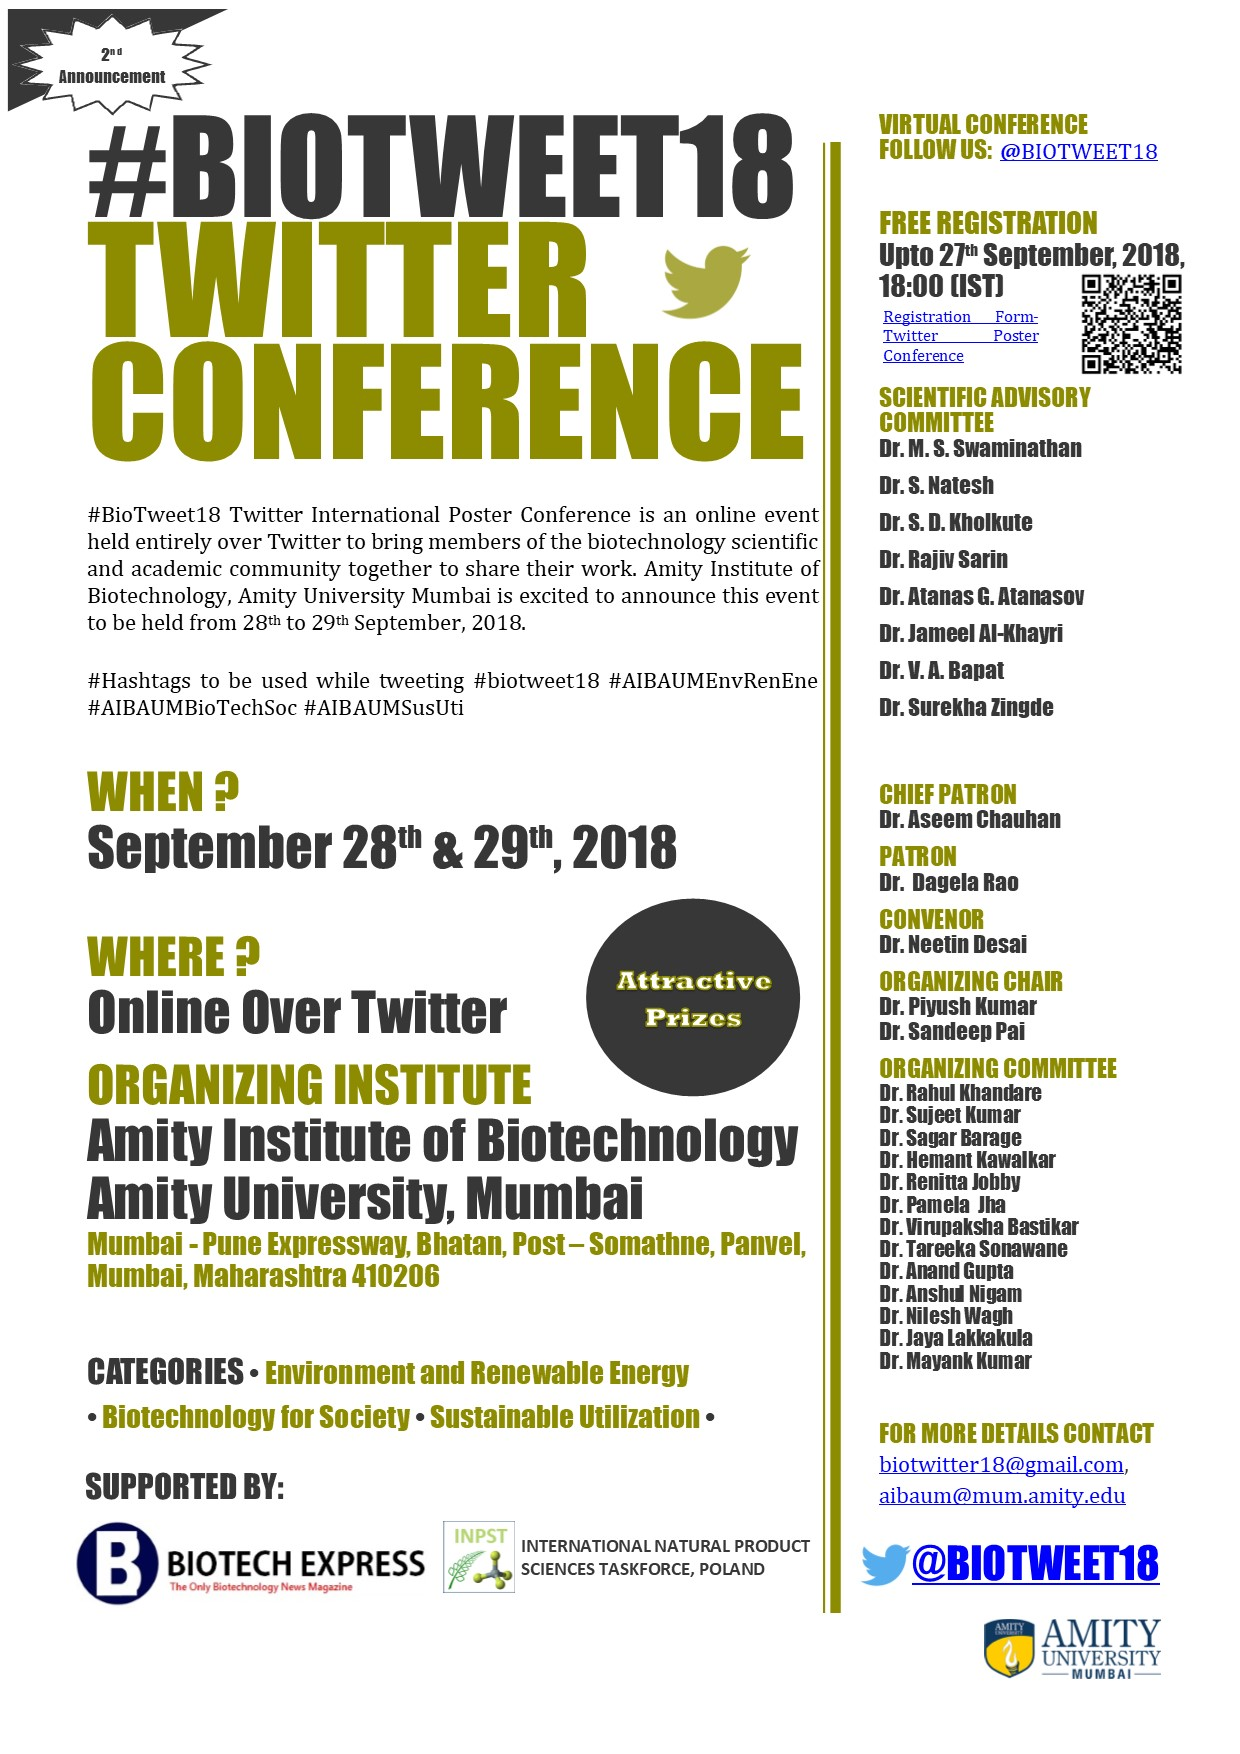 #BioTweet18 Twitter Conference (free registration, held entirely over Twitter, September 28-29, 2018)